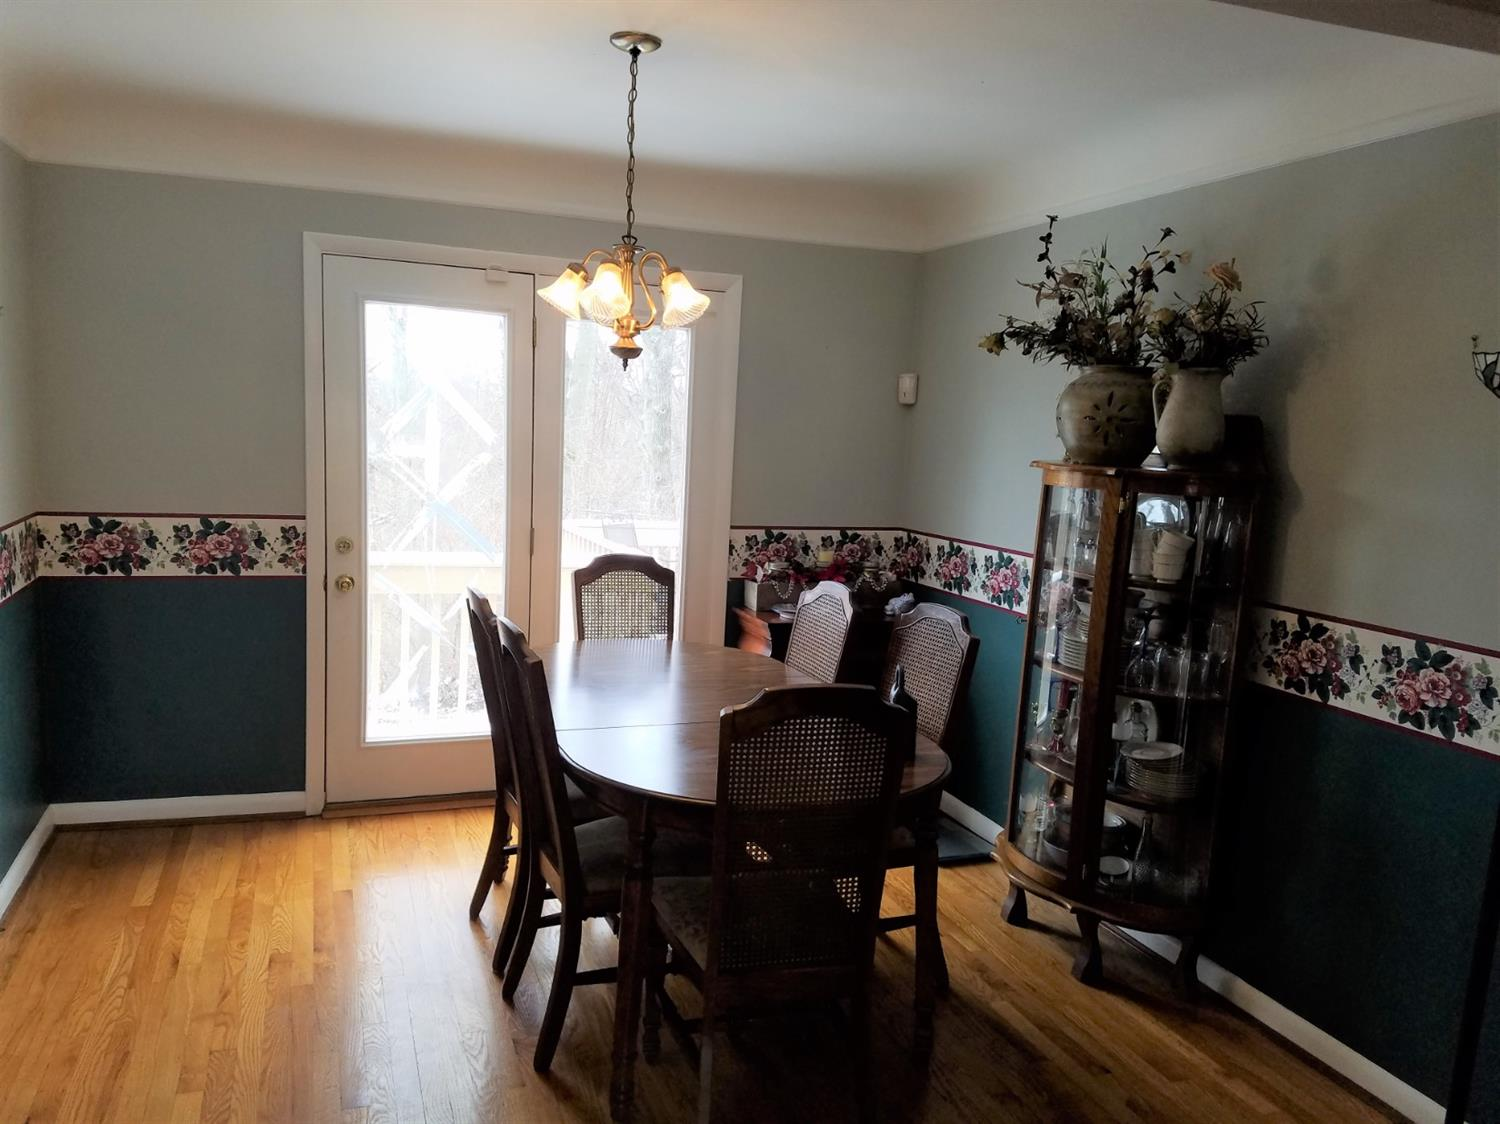 Photo 3 for 1771 Tuxworth Ave Covedale, OH 45238